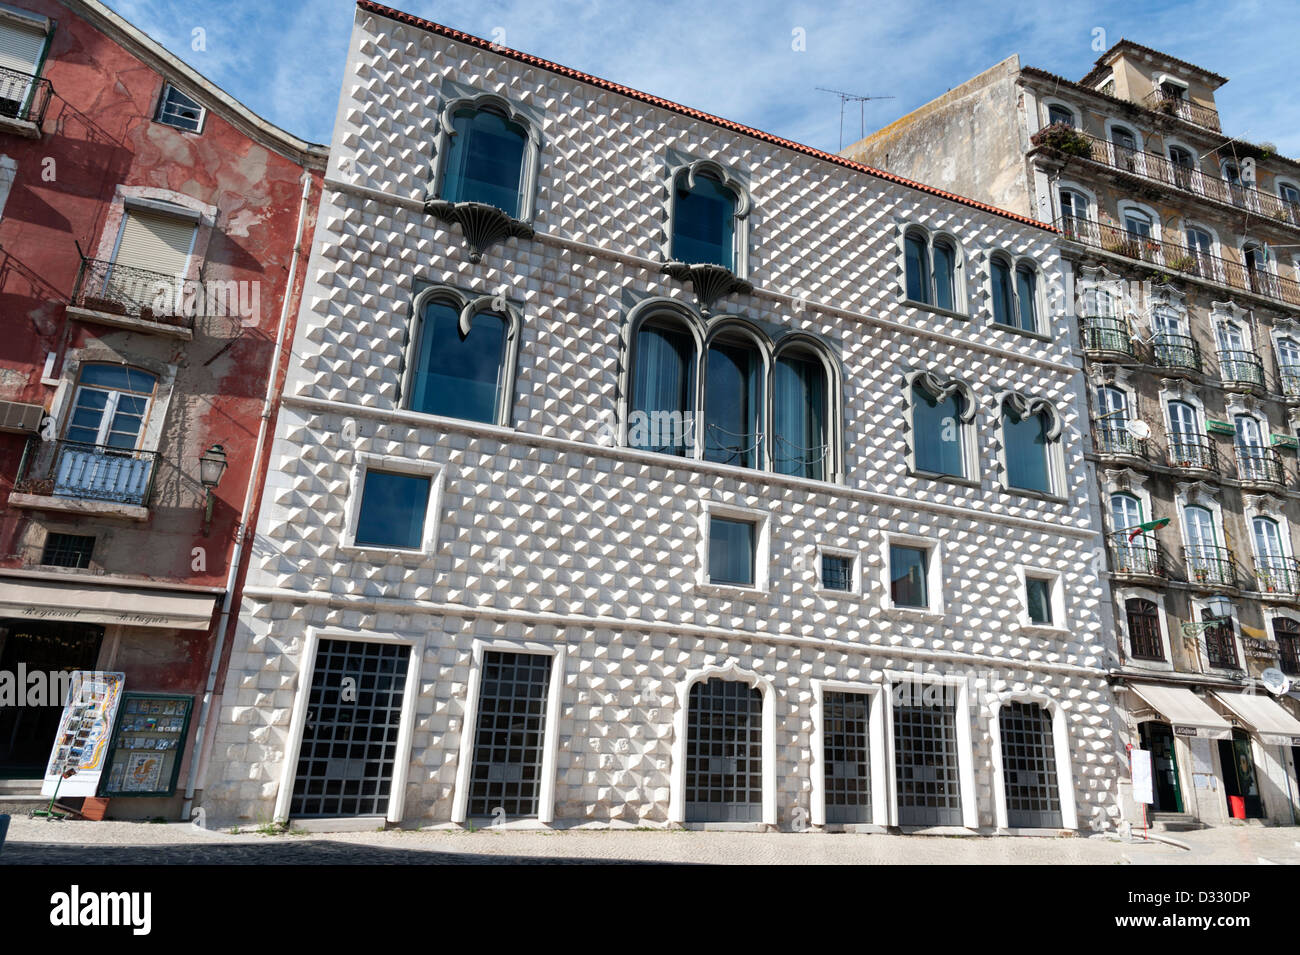 The Casa dos Bicos, Lisbon, Portugal - Stock Image